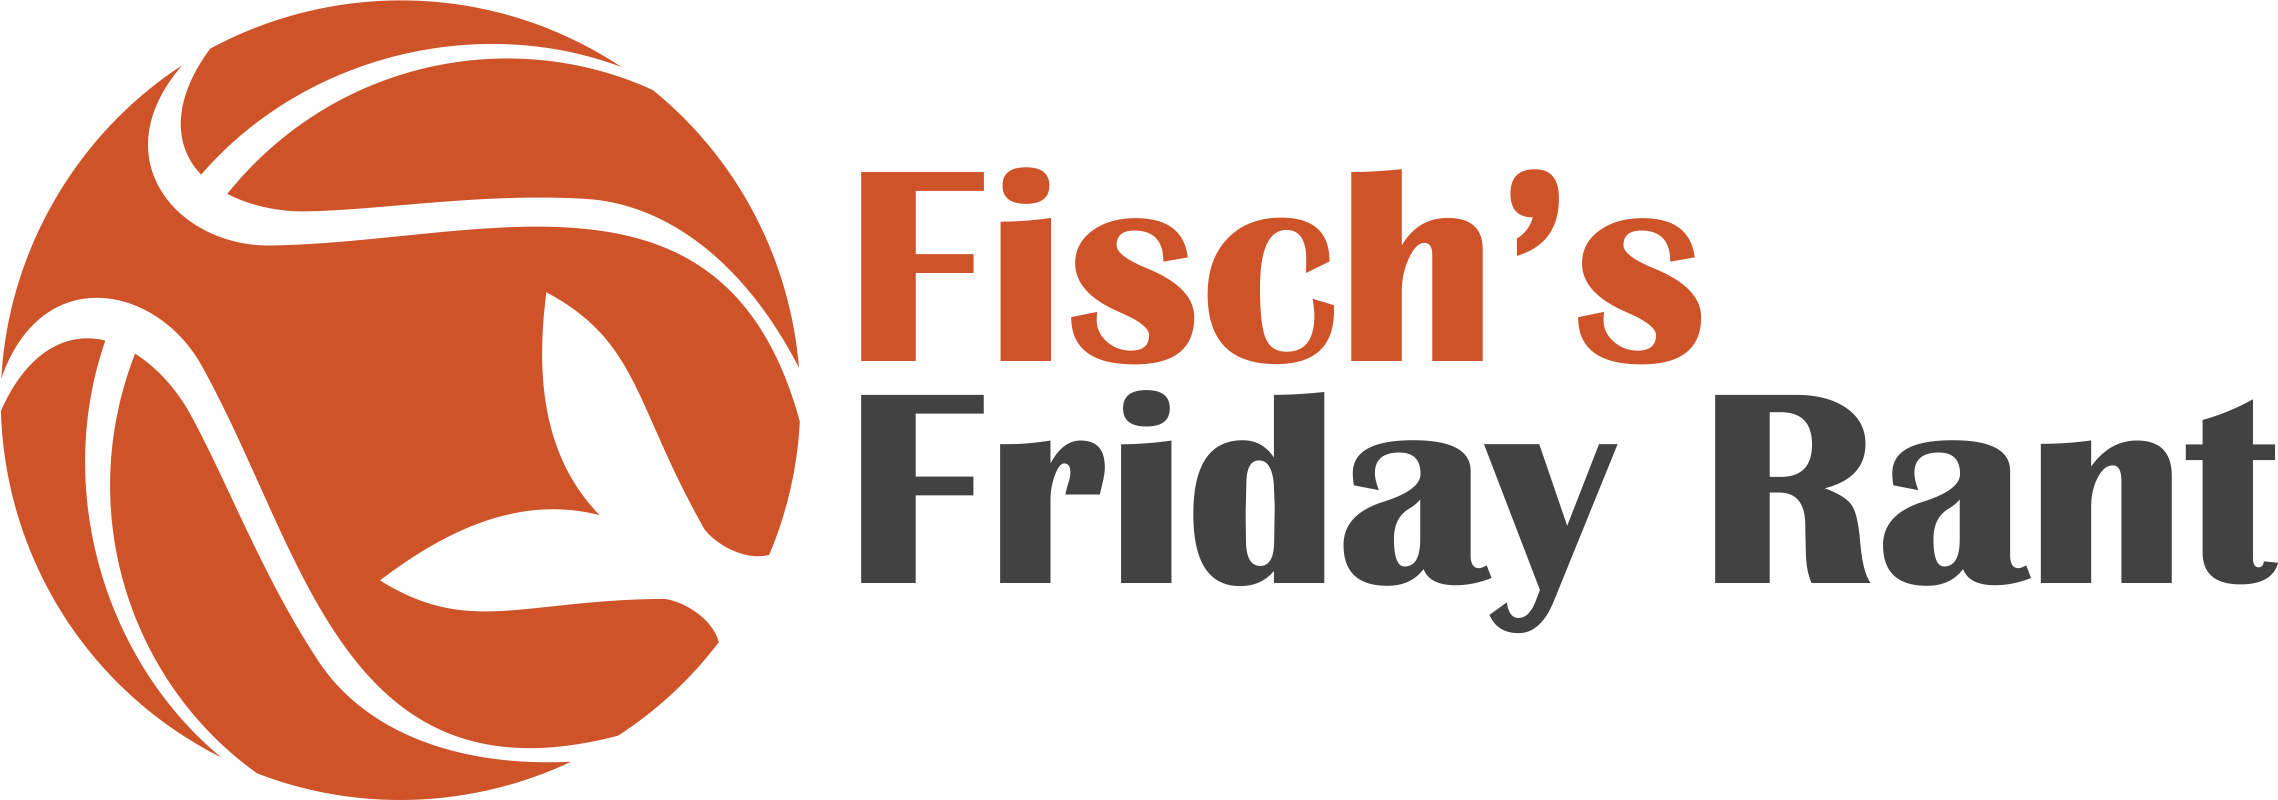 Fisch's Friday Rant